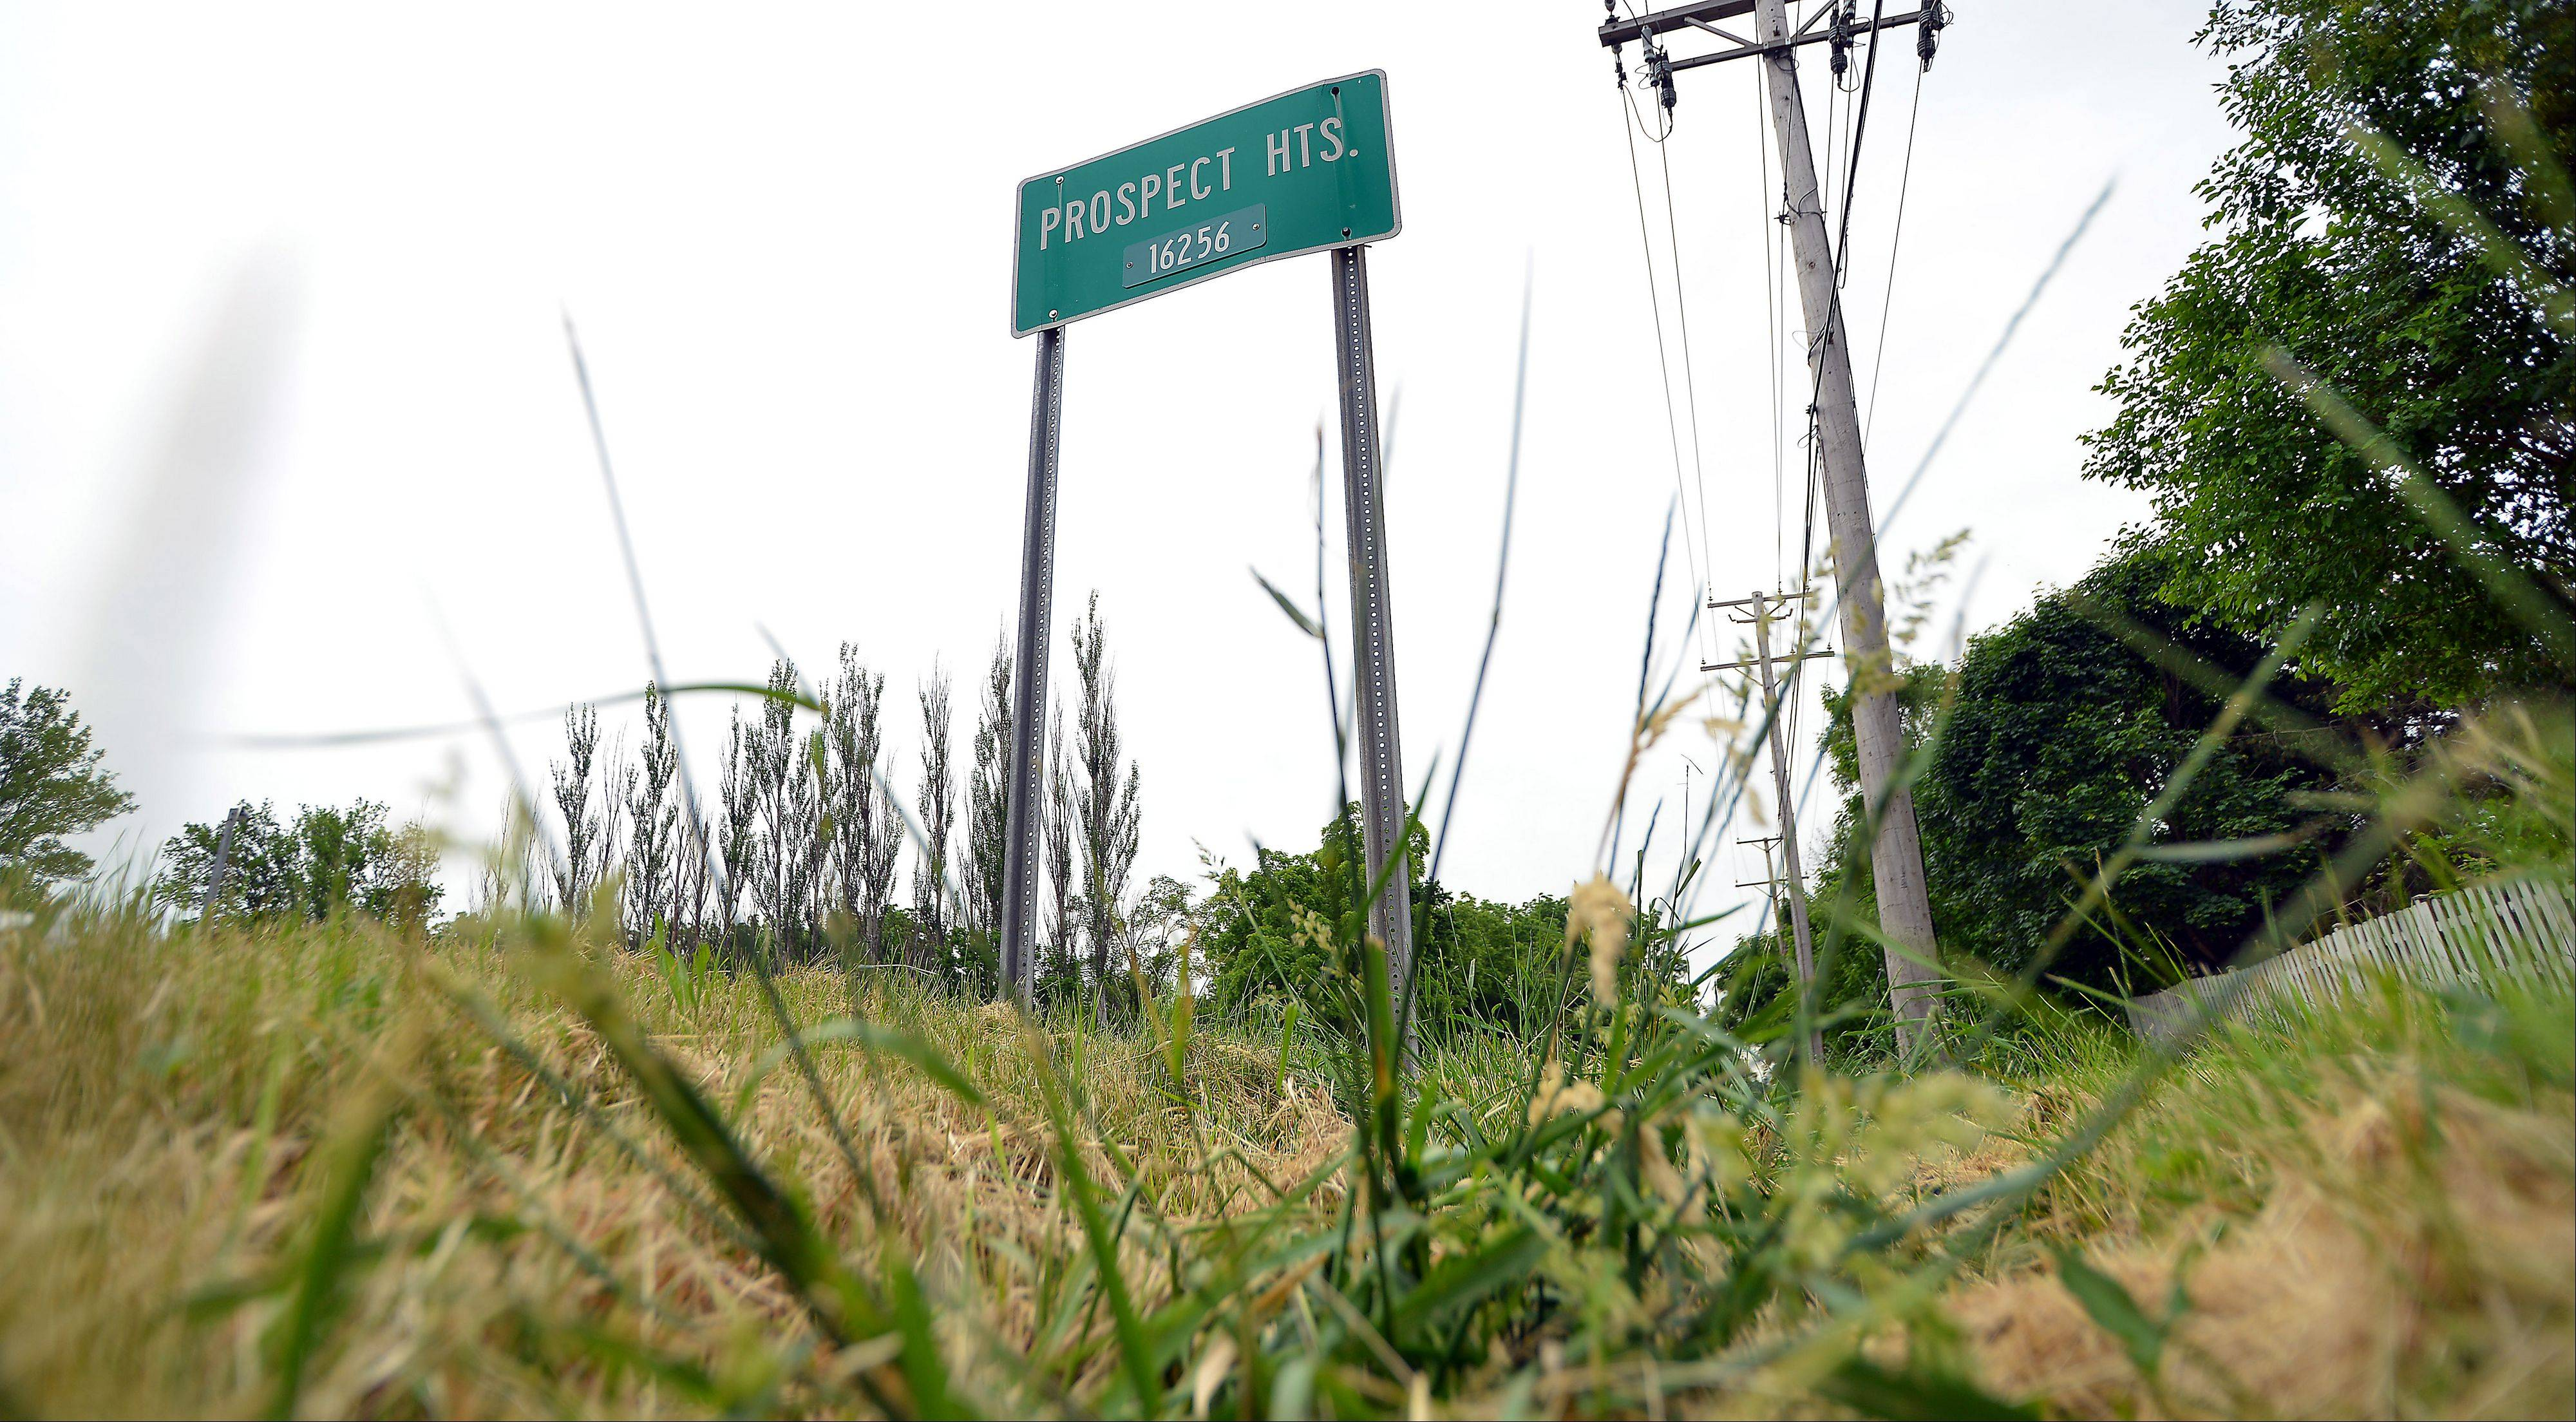 The Prospect Heights city council agreed this week to hire seasonal help for public works. Overgrown grass dominates the intersection near Hintz and Schoenbeck roads in Prospect Heights.